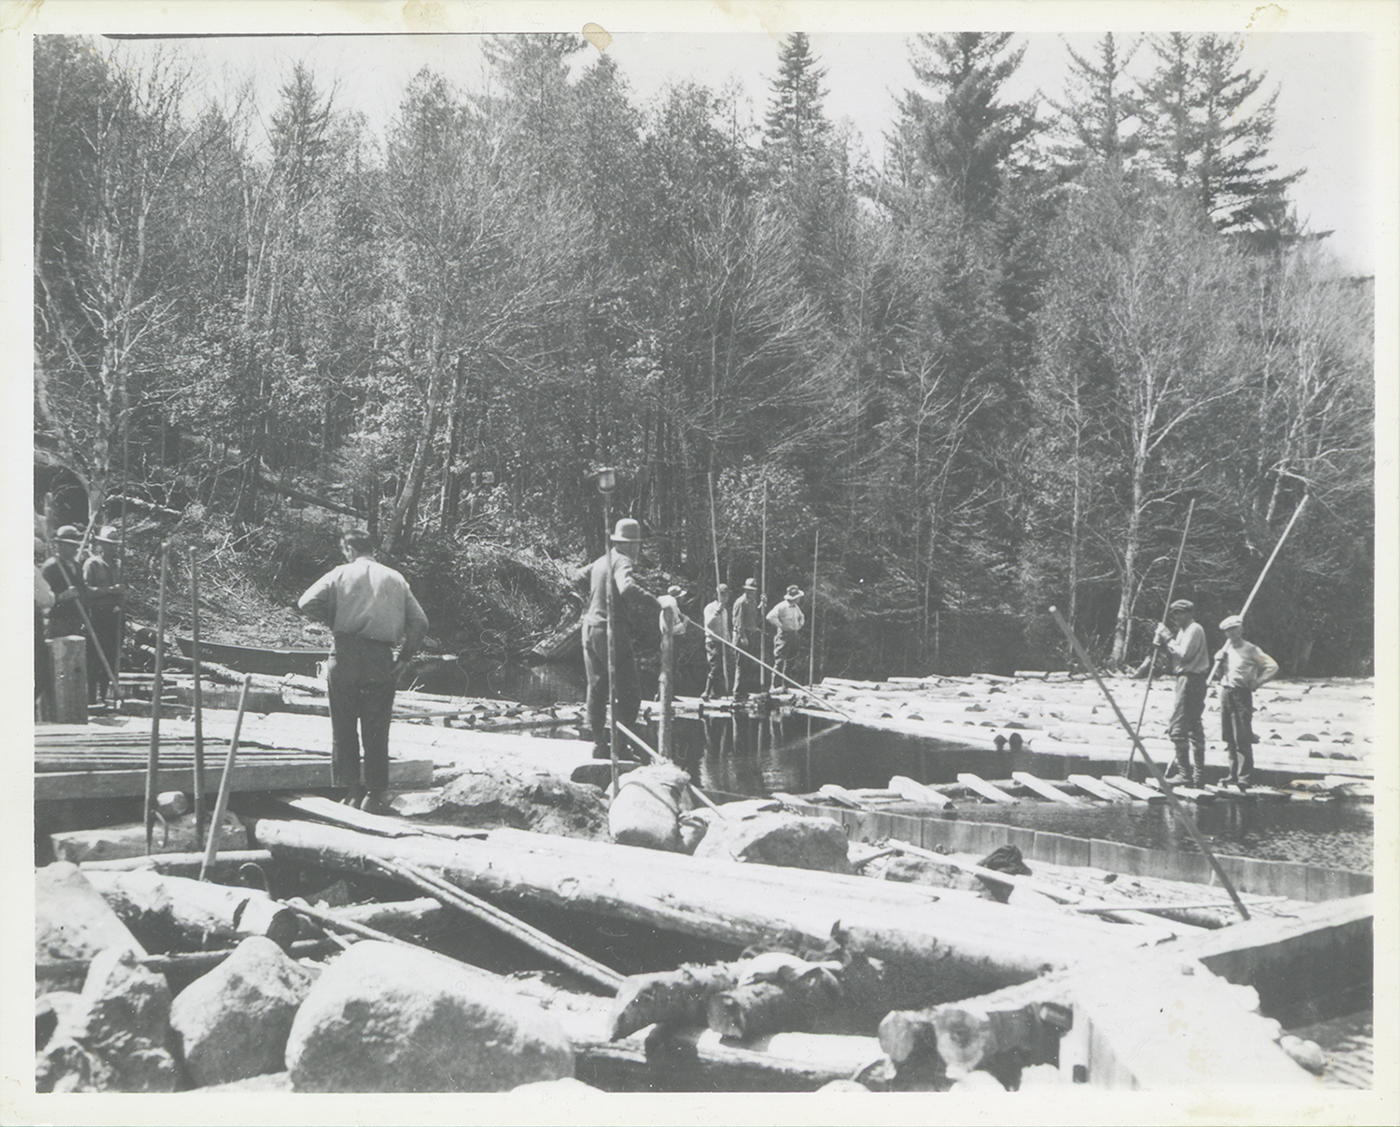 River drivers standing on docks on Henderson Lake, NY surrounded by logs, May 1931.  They are waiting for the wind to change from the south to the west to blow the logs across the lake to a dam which will send them down the Henderson River to the lumber mills on the Hudson River.  Bill Gluesing and Paul Schaefer took this on a trip to photograph Indian Pass from Henderson Lake.